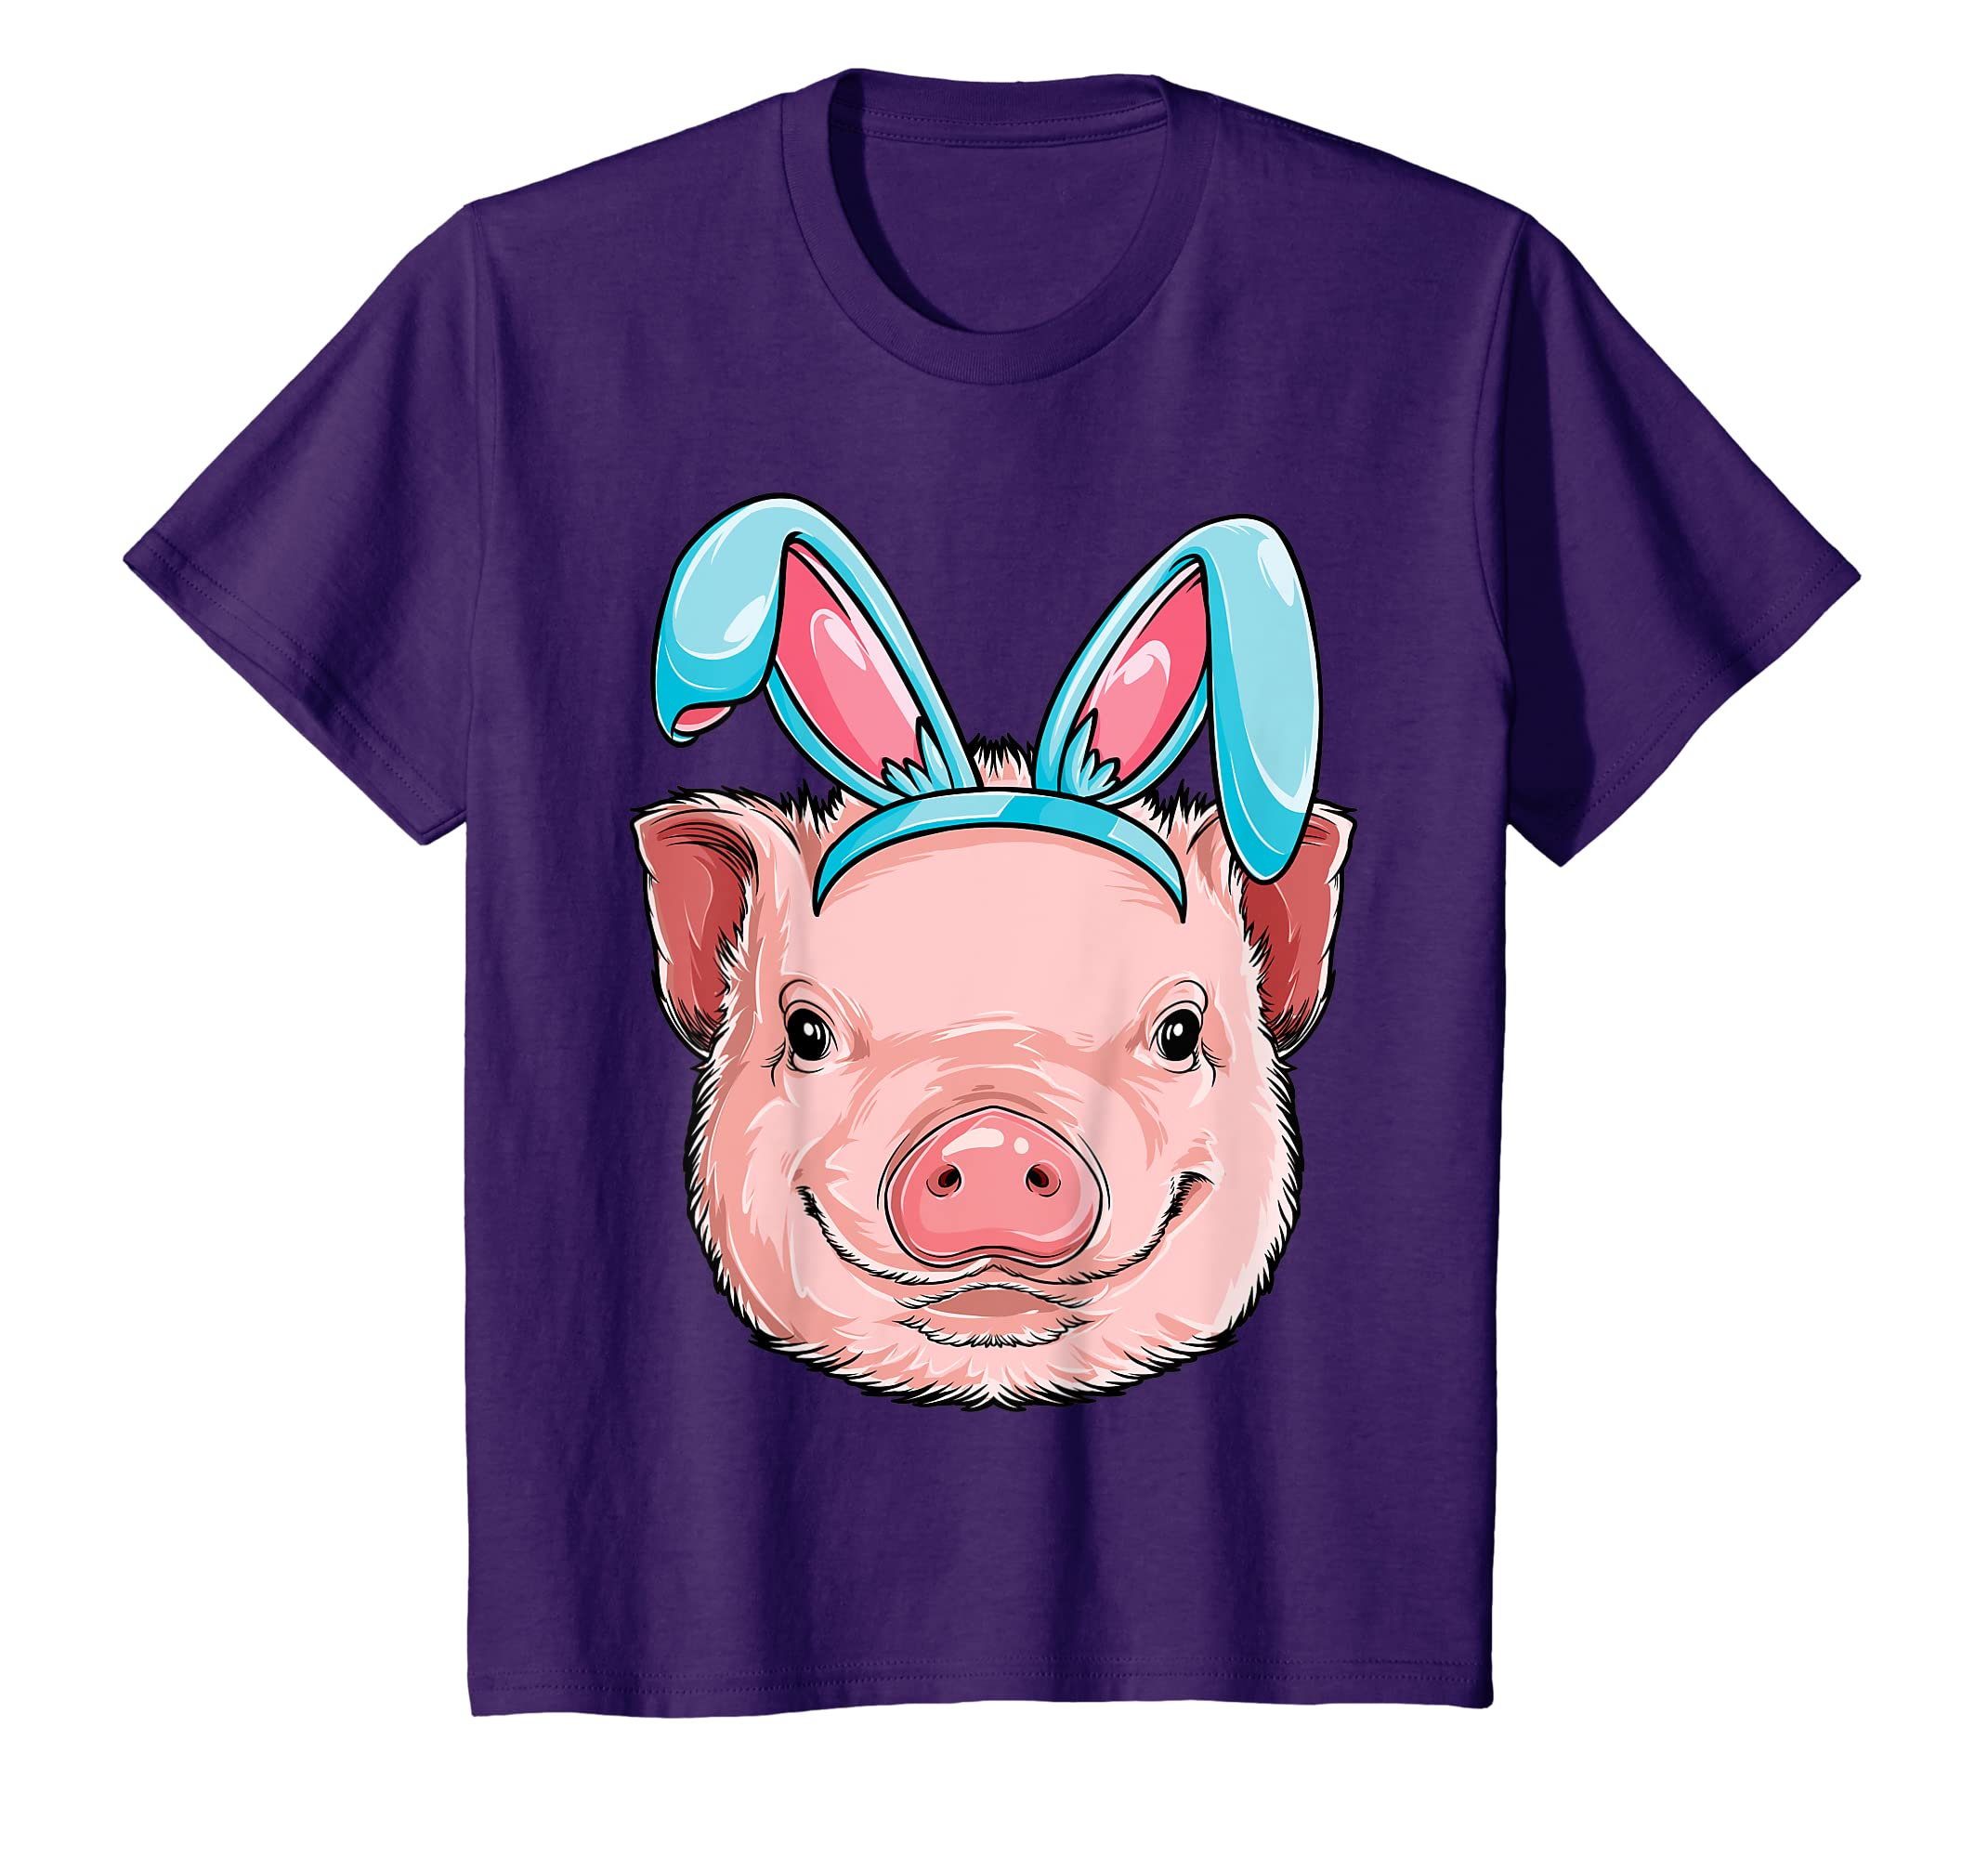 46a31ad2 Amazon.com: Easter Bunny Pig T shirt Girls Boys Kids Women Funny Gifts:  Clothing